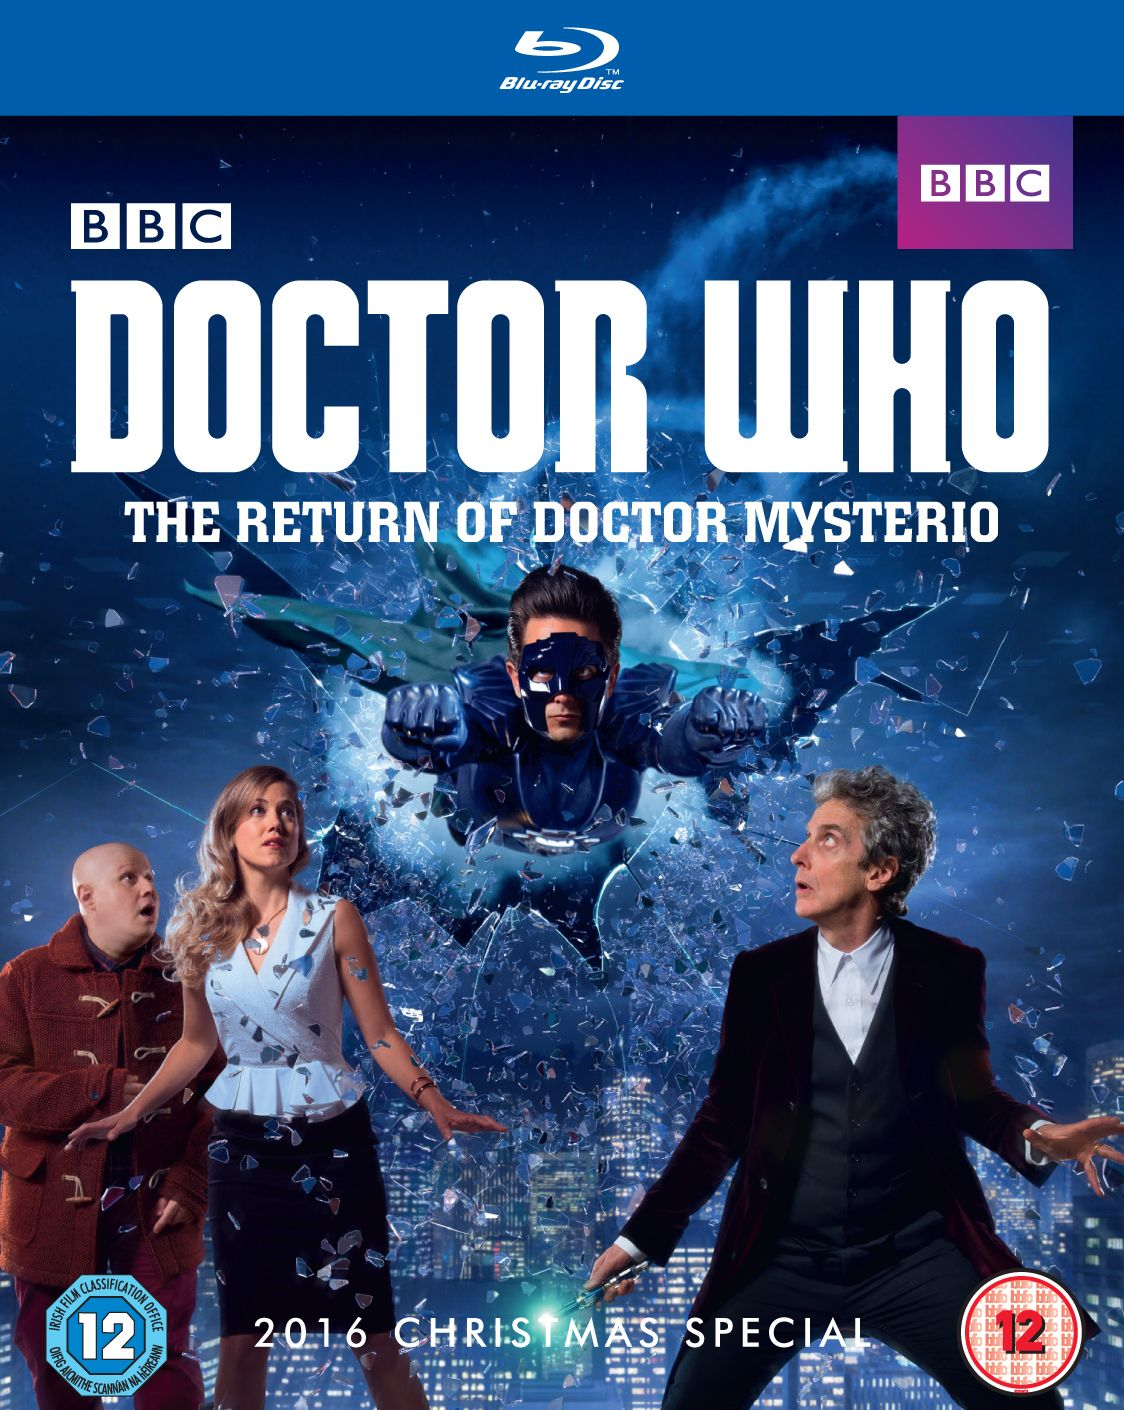 The Return of Doctor Mysterio (Blu-ray) (Credit: BBC Worldwide)